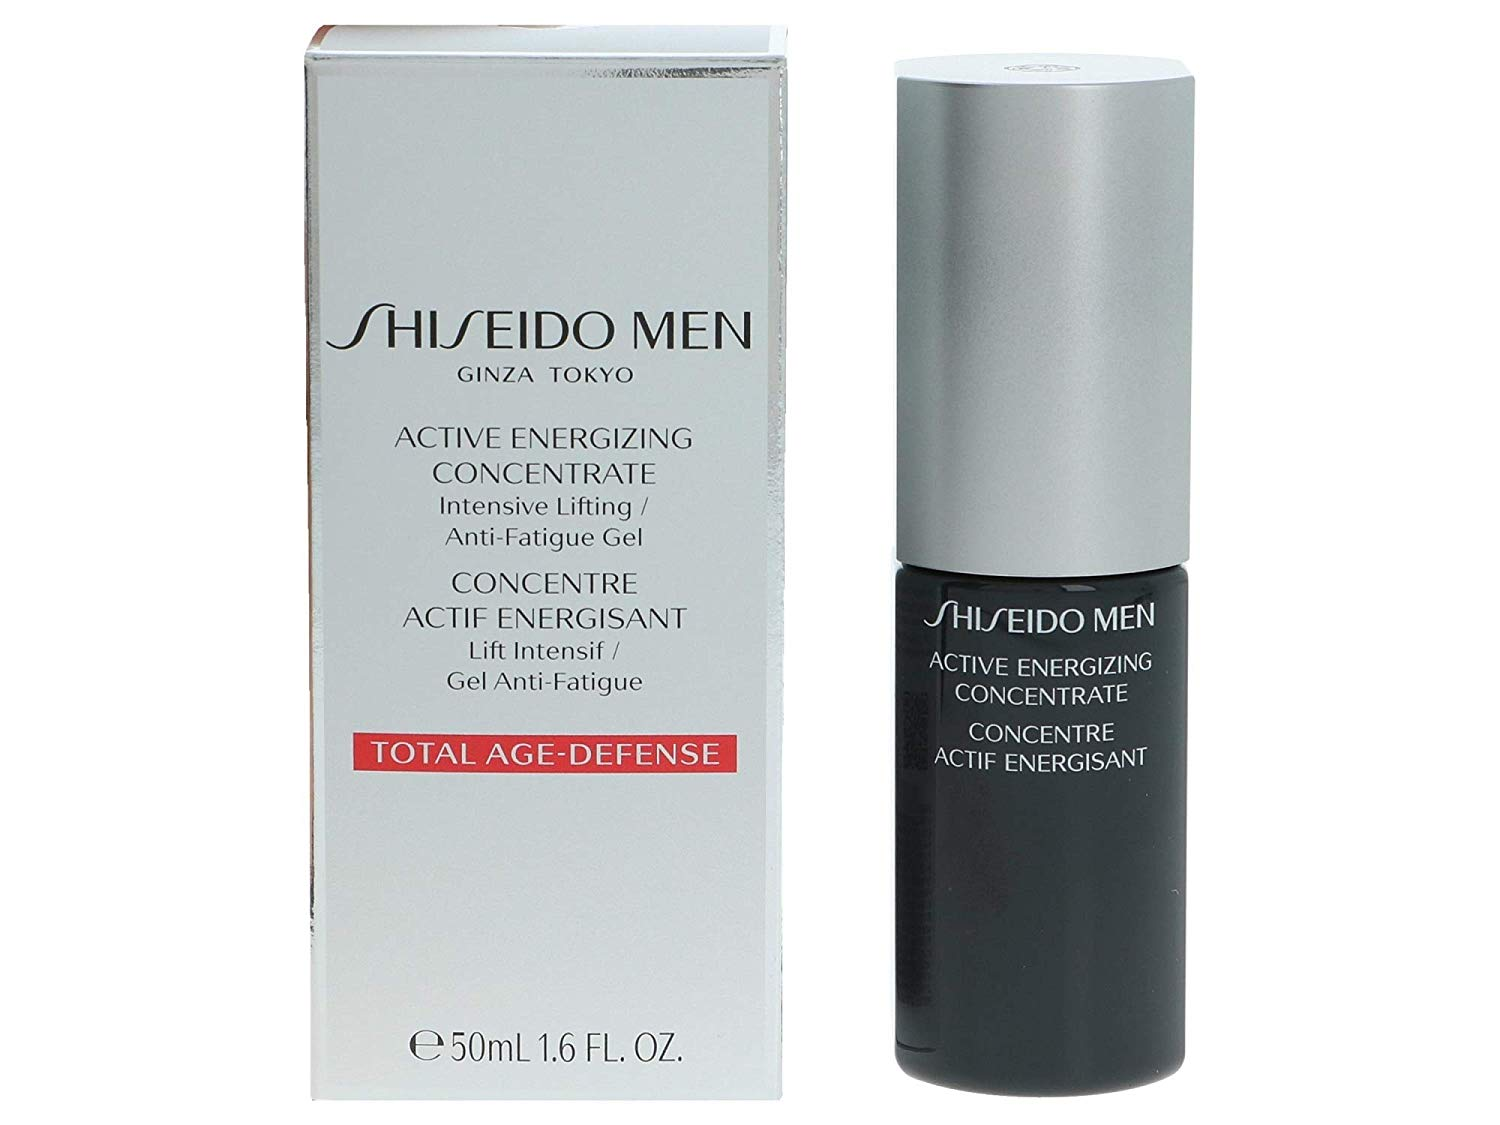 Shisheido Active Energizing Concentrate For Men